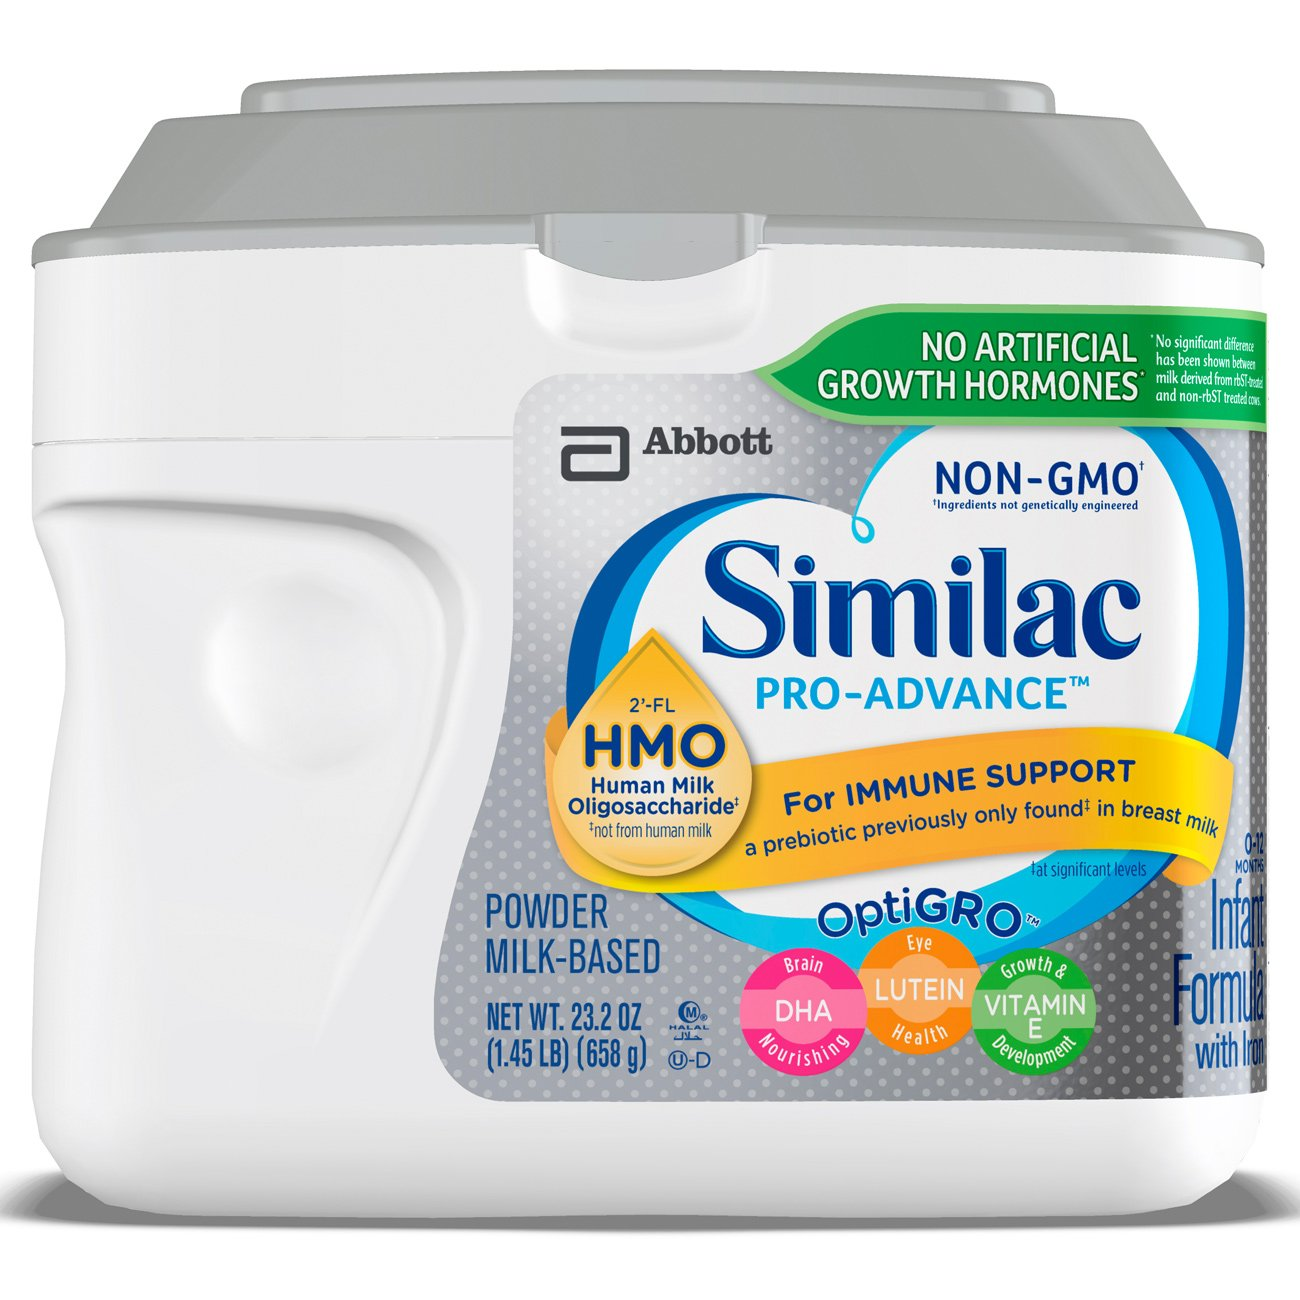 Similac Pro-Advance Non-GMO Infant Formula with Iron, with 2'-FL HMO, For Immune Support, Baby Formula, Powder, 23.2 ounces, 6 count